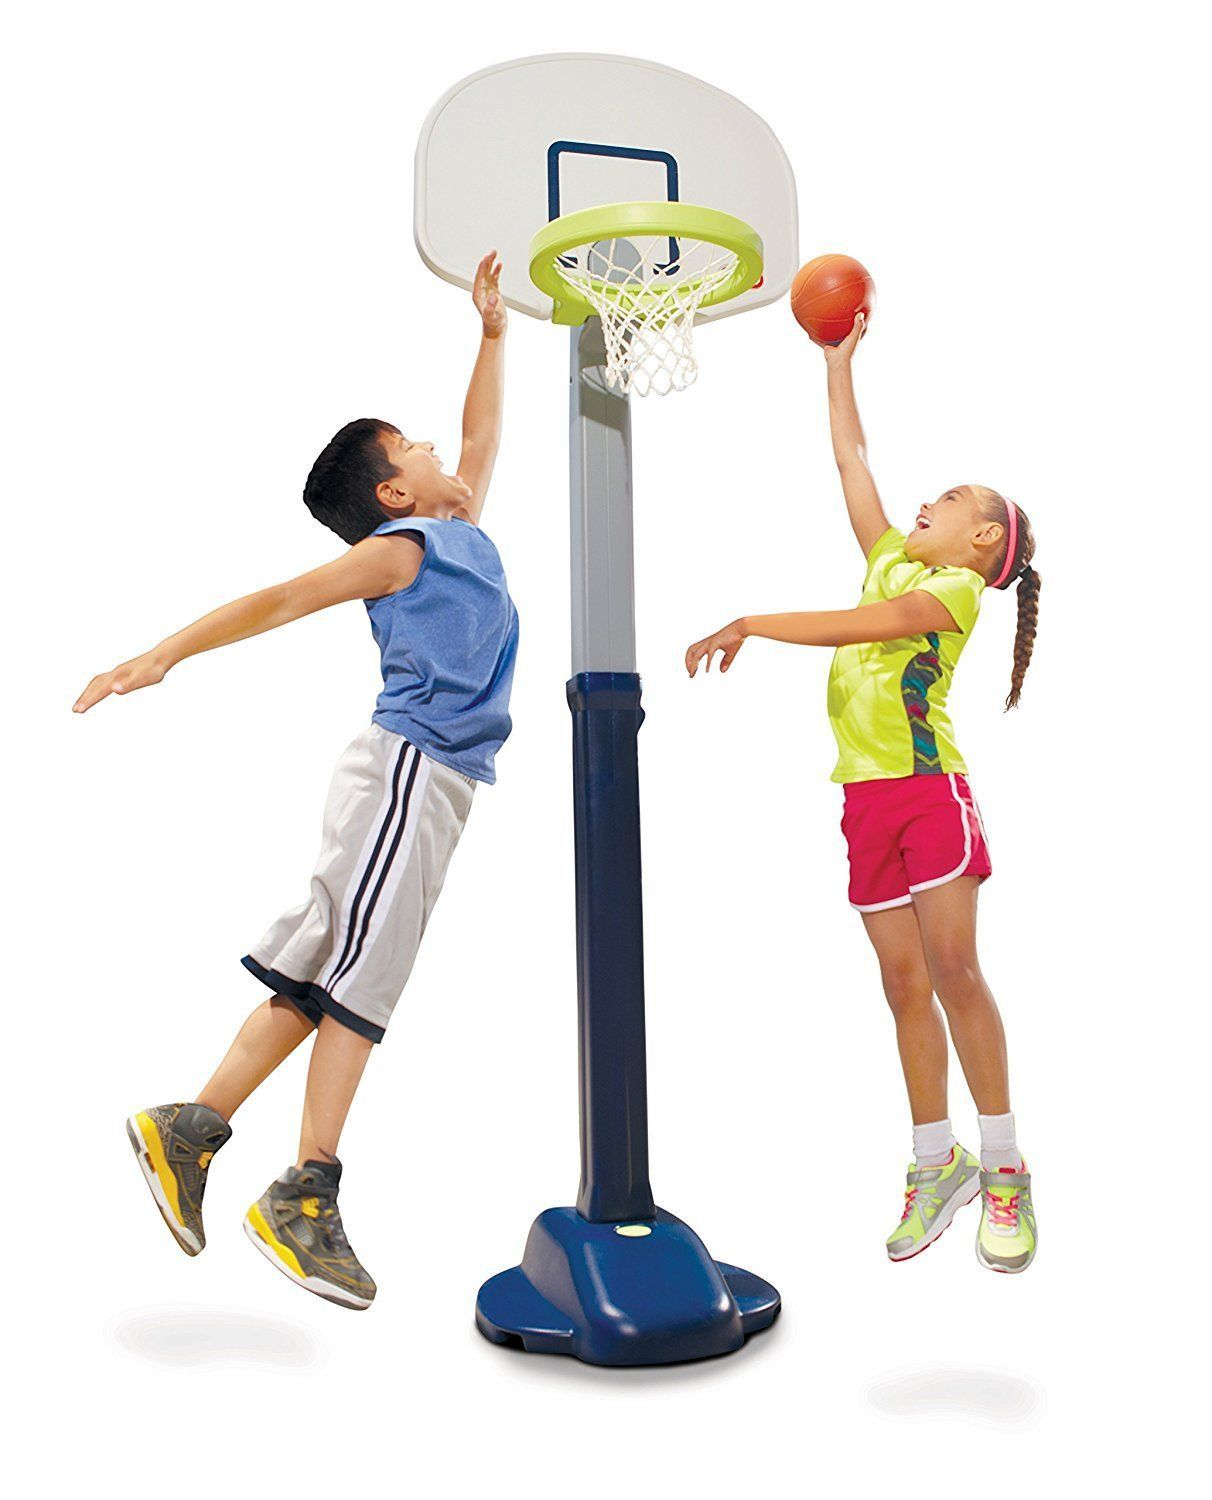 Little Tikes Adjust And Jam Pro Basketball Set Blue (With